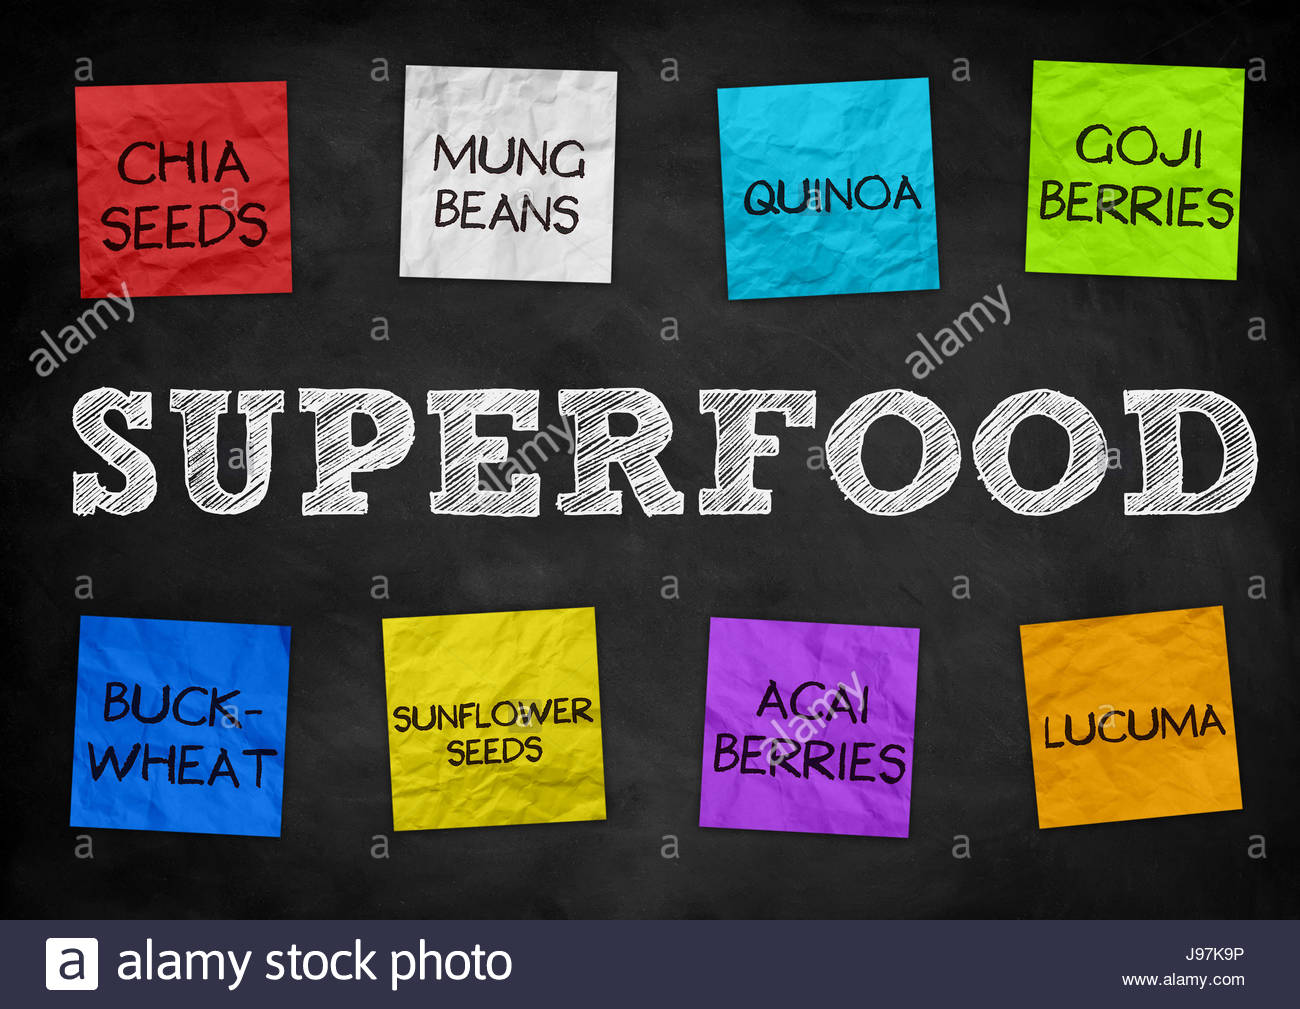 Superfood health nutrition - Stock Image